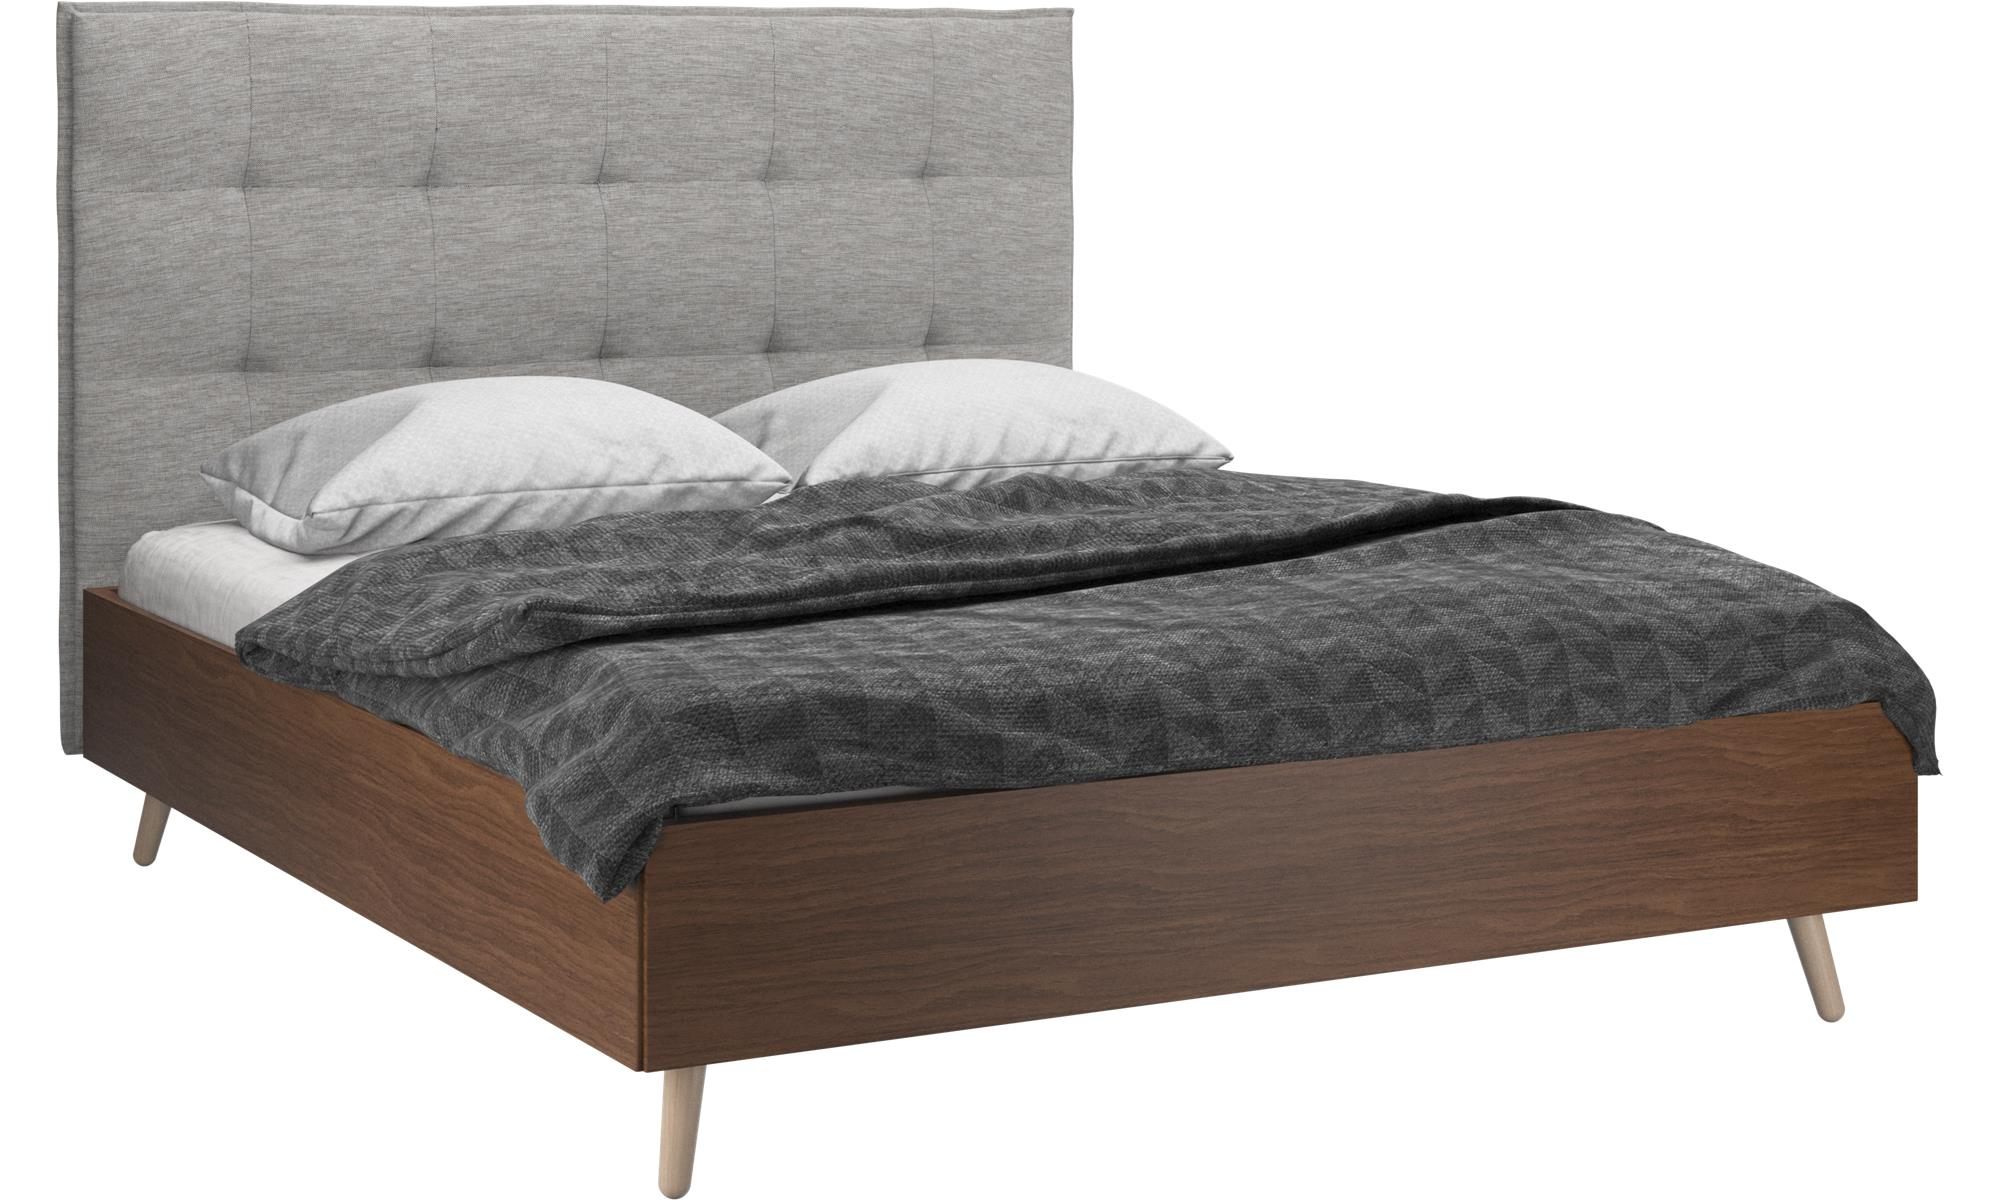 betten lugano bett lattenrost und matratze gegen aufpreis boconcept. Black Bedroom Furniture Sets. Home Design Ideas